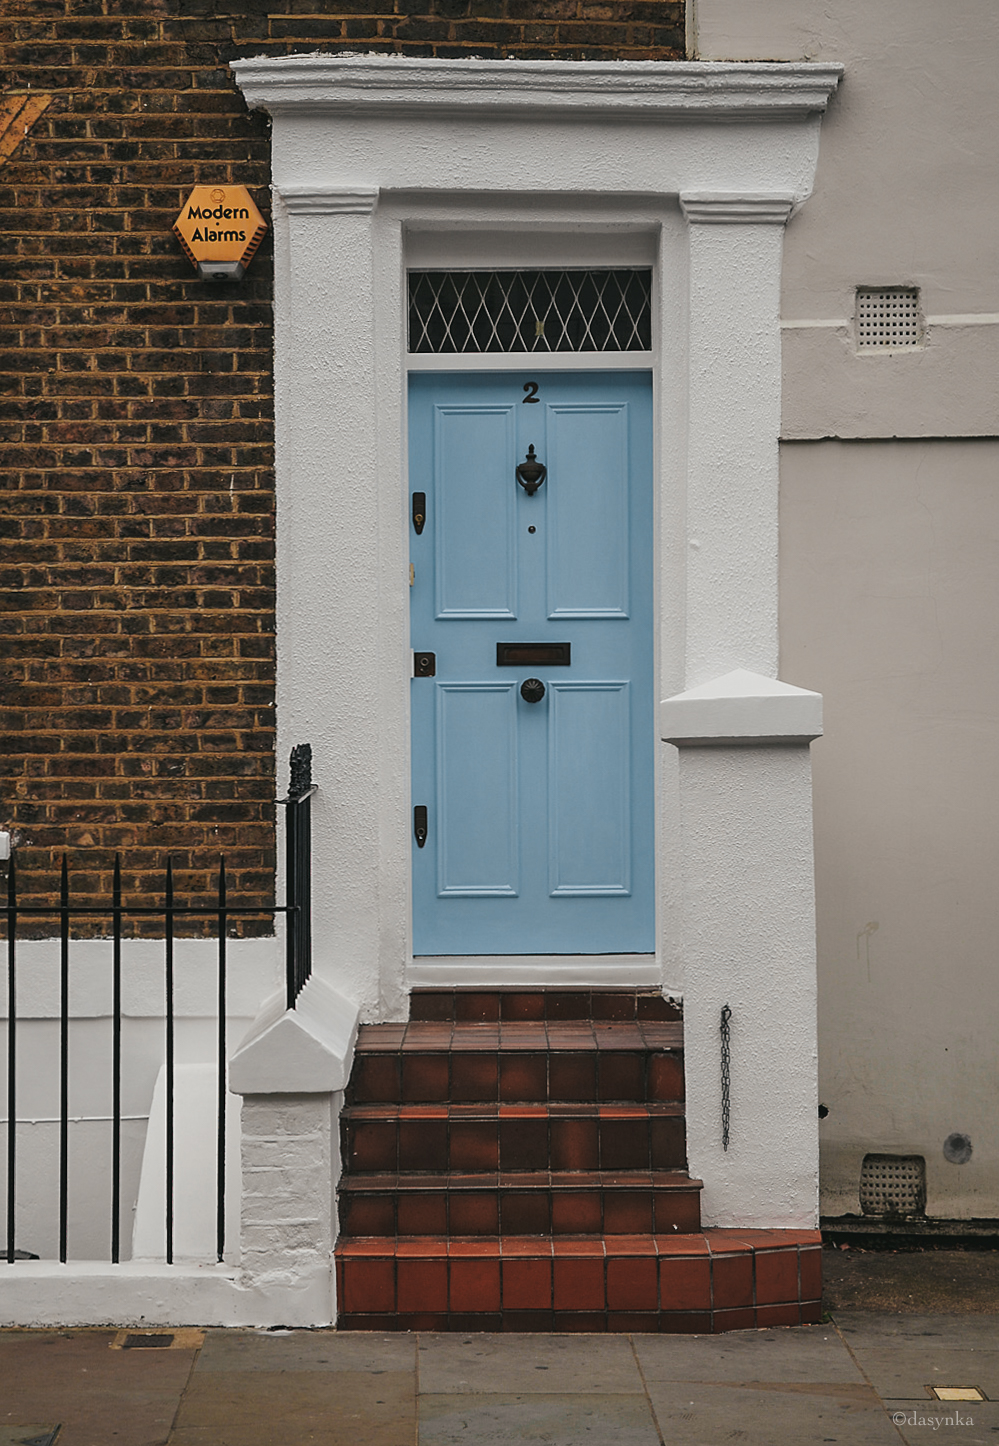 dasynka-fashion-blogger-blog-notting-hill-globetrotter-travel-london-door-blue